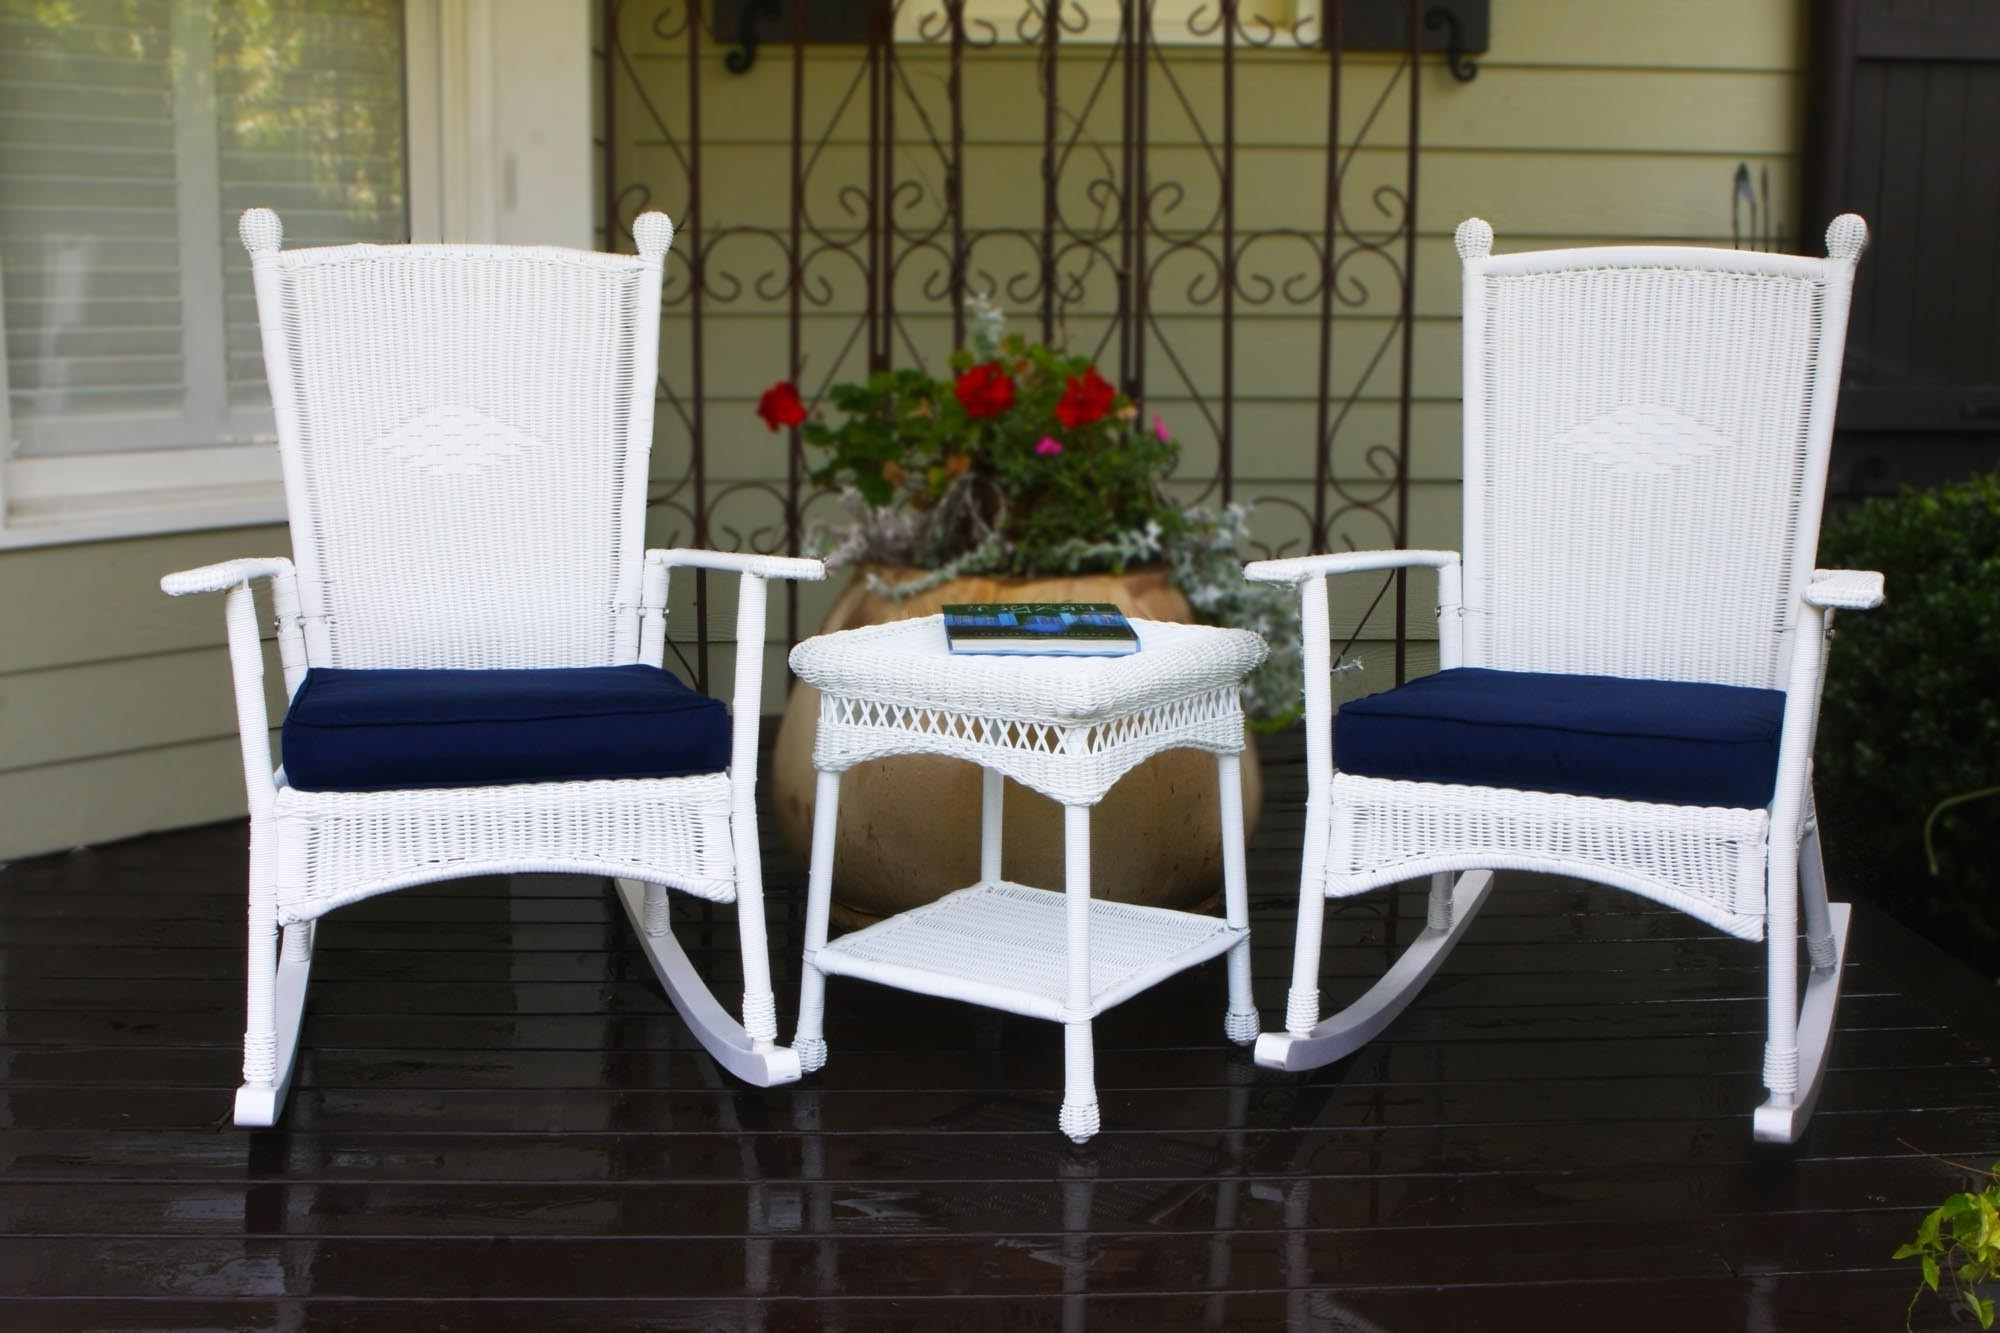 Preferred White Wicker Rocking Chairs Pertaining To Childs White Wicker Rocking Chair (View 13 of 20)